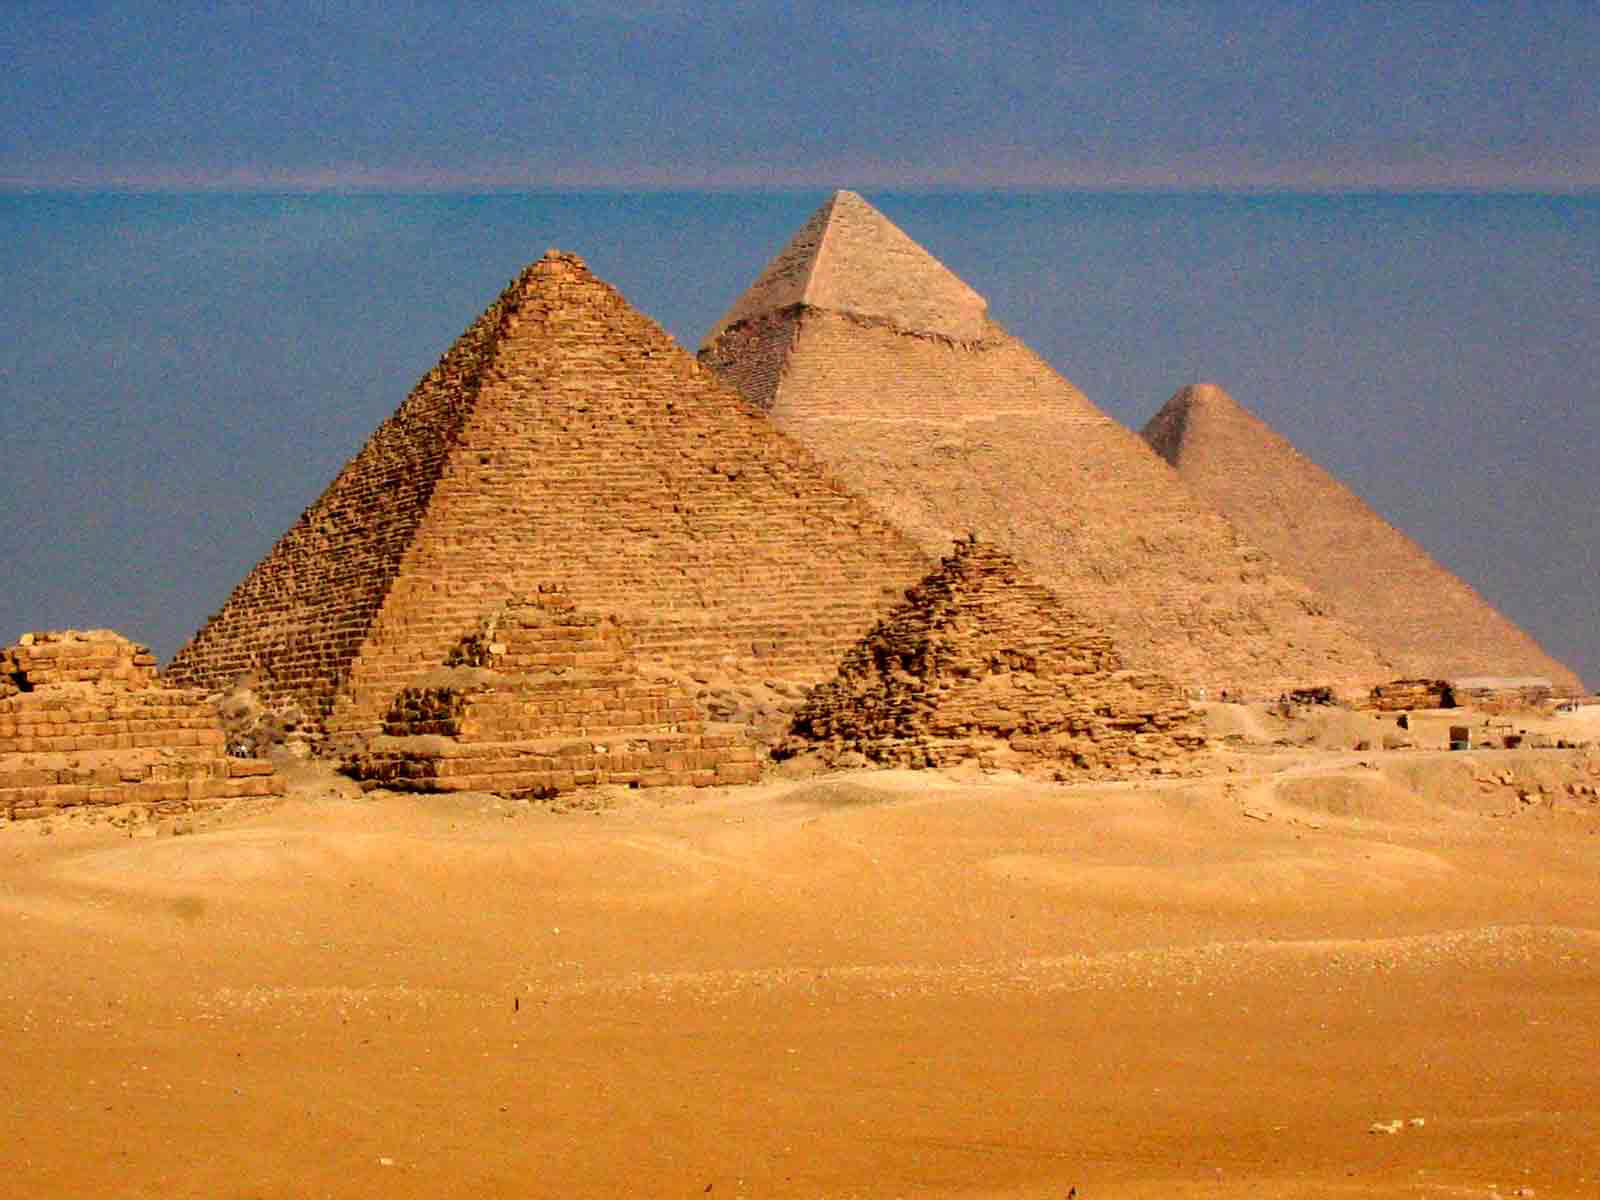 ancient egyptian architecture | project egypt: pyramids, mummies